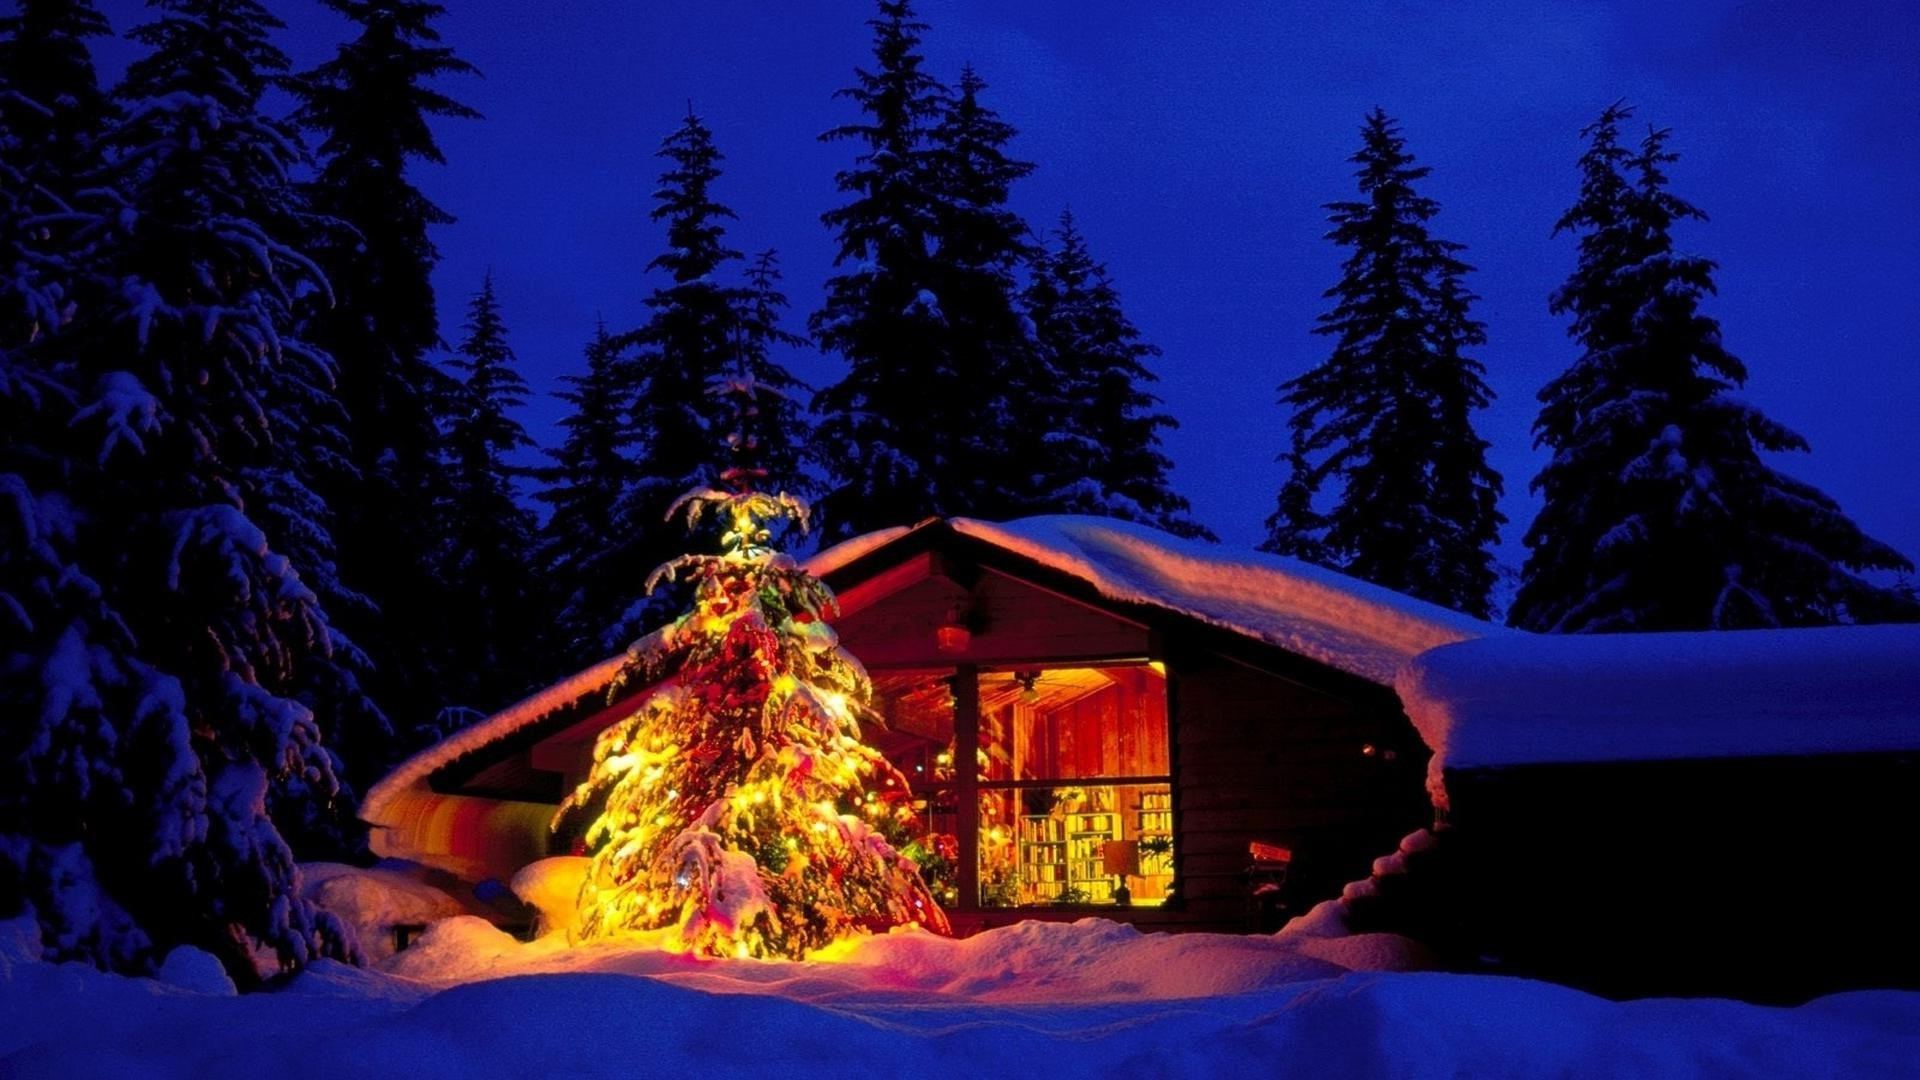 Christmas Cabin Wallpaper 51 Images